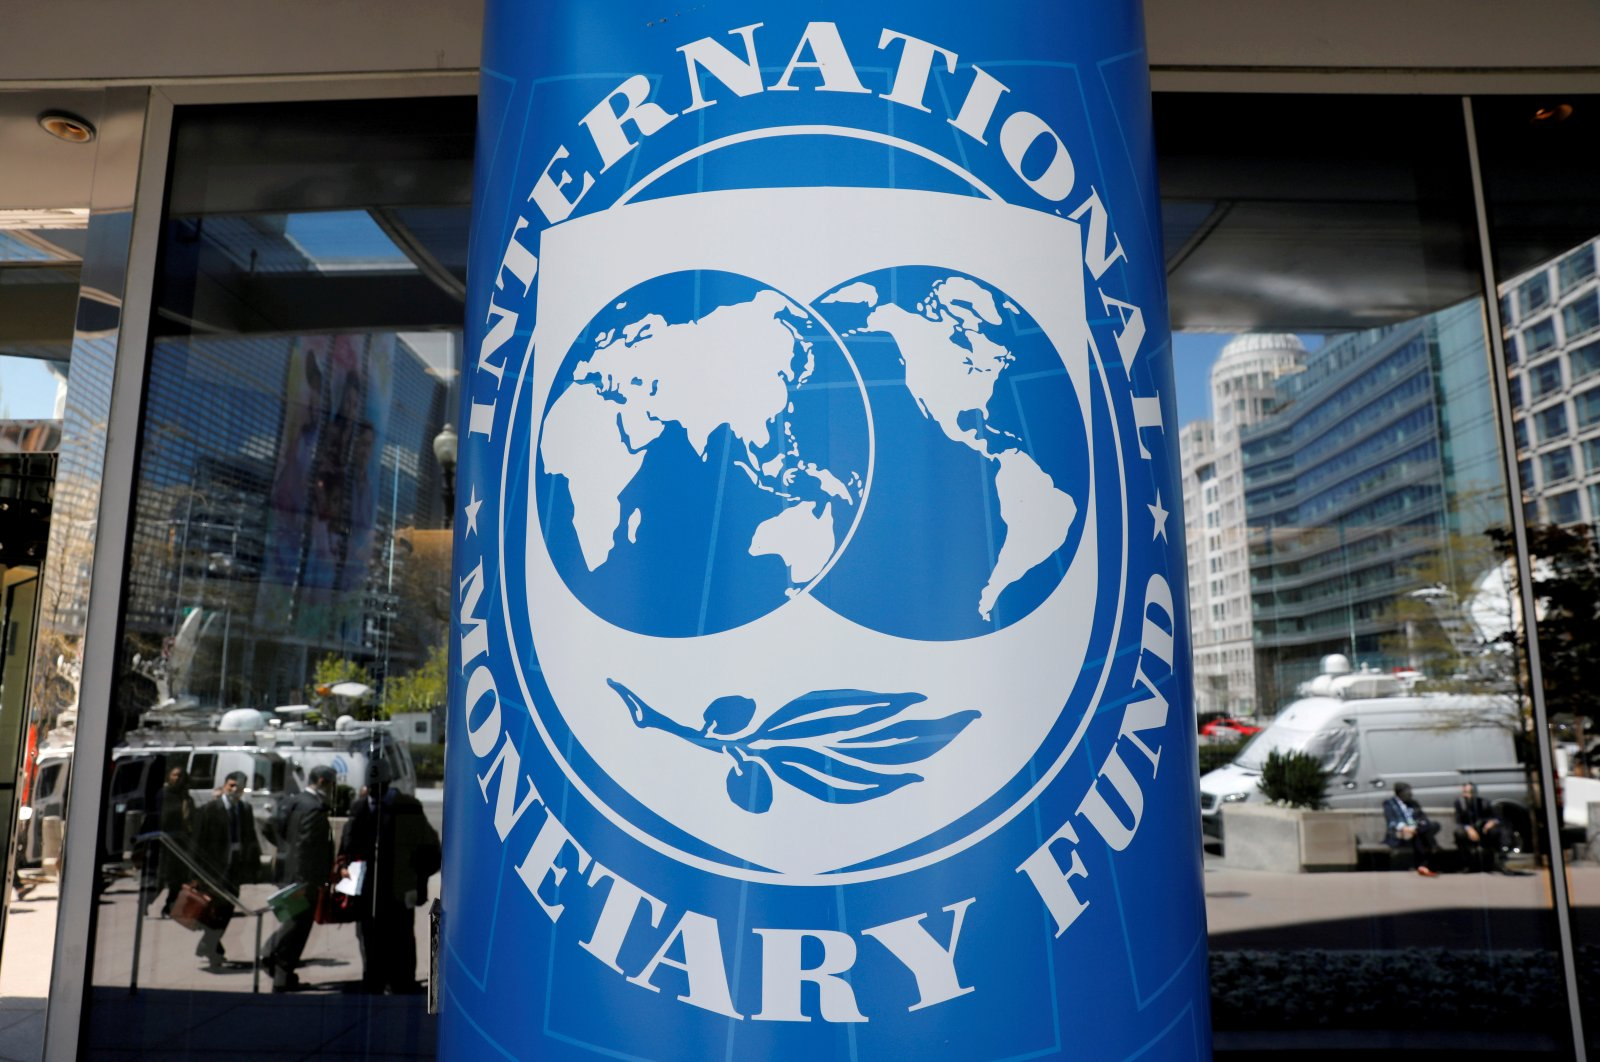 The International Monetary Fund logo is seen outside its headquarters during the IMF/World Bank spring meetings in Washington, U.S., April 20, 2018. (Reuters Photo)